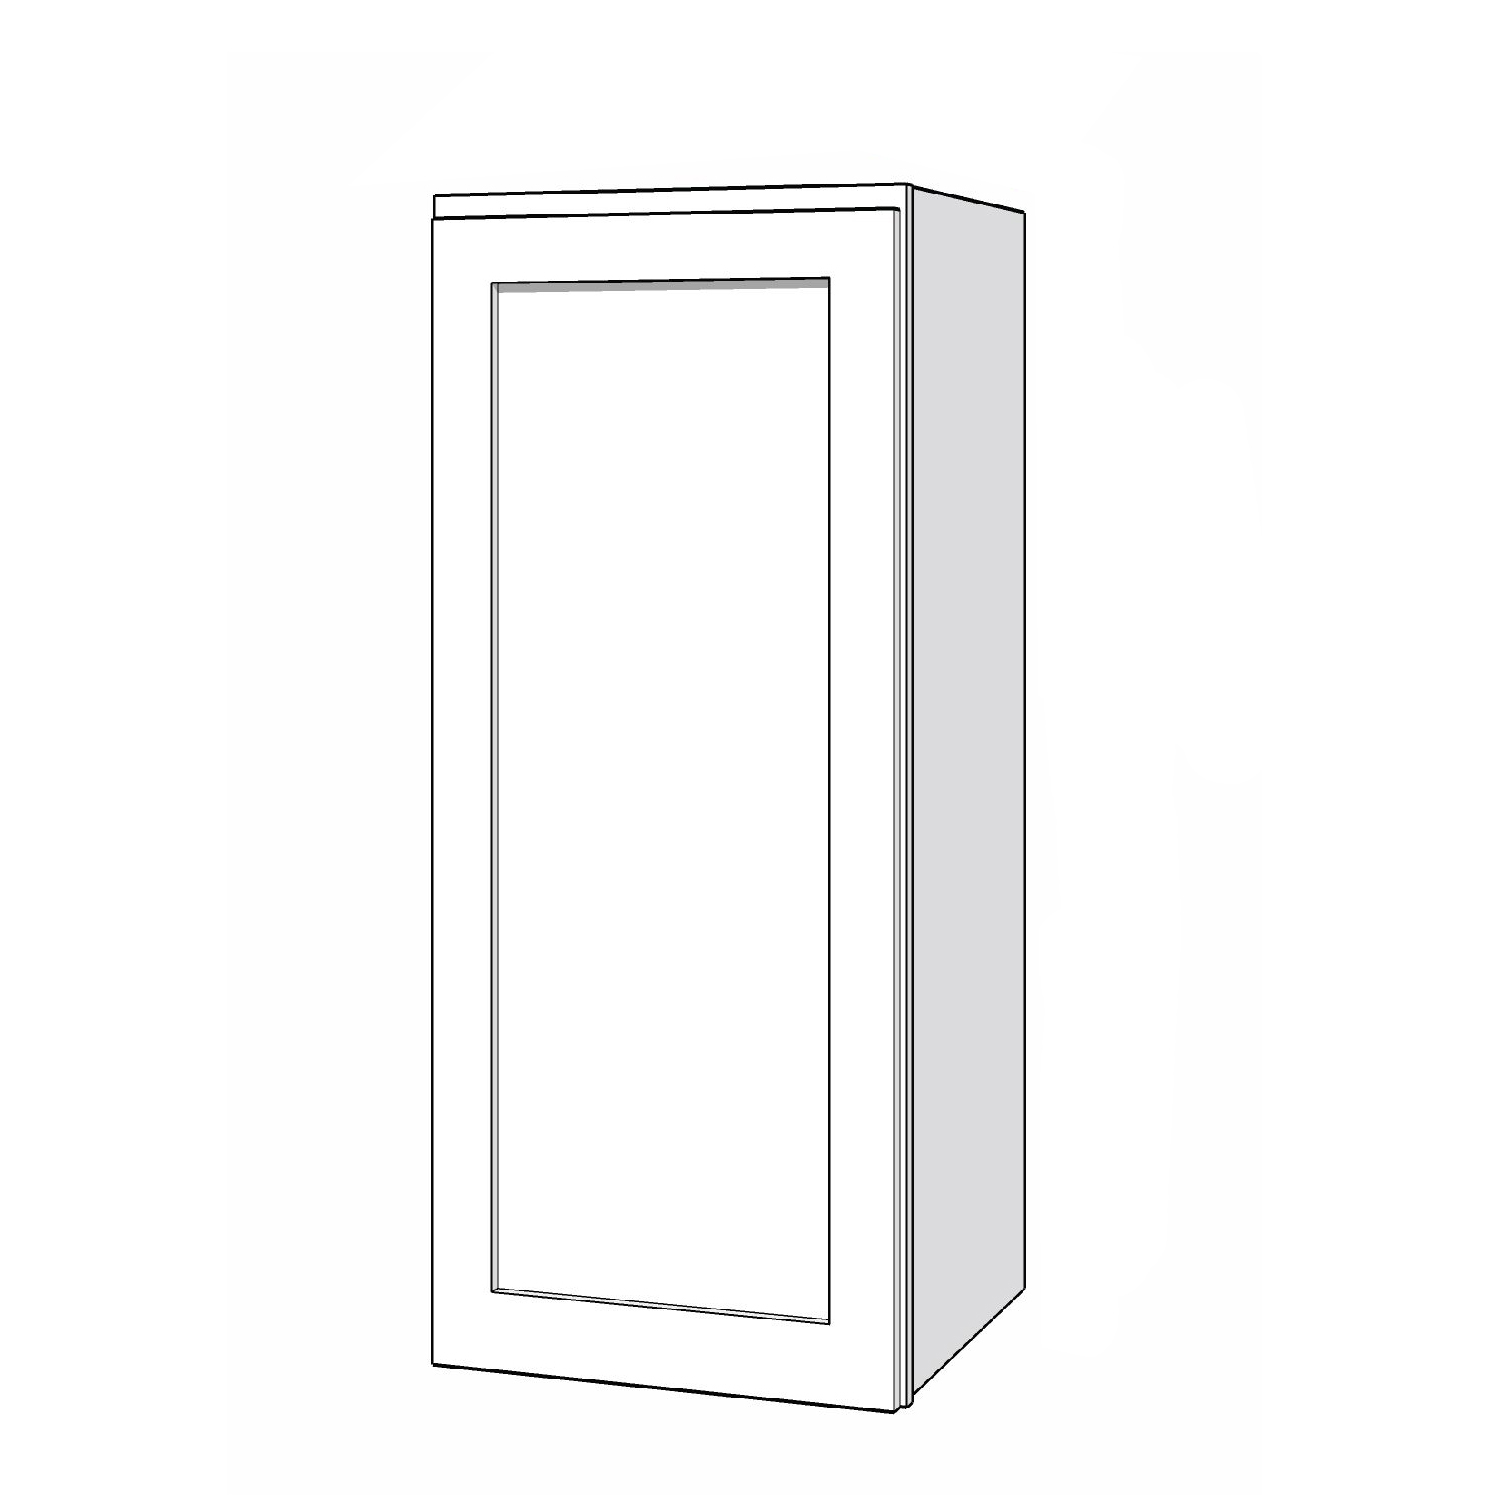 Wall Cabinet - 15in. x 36in. - White